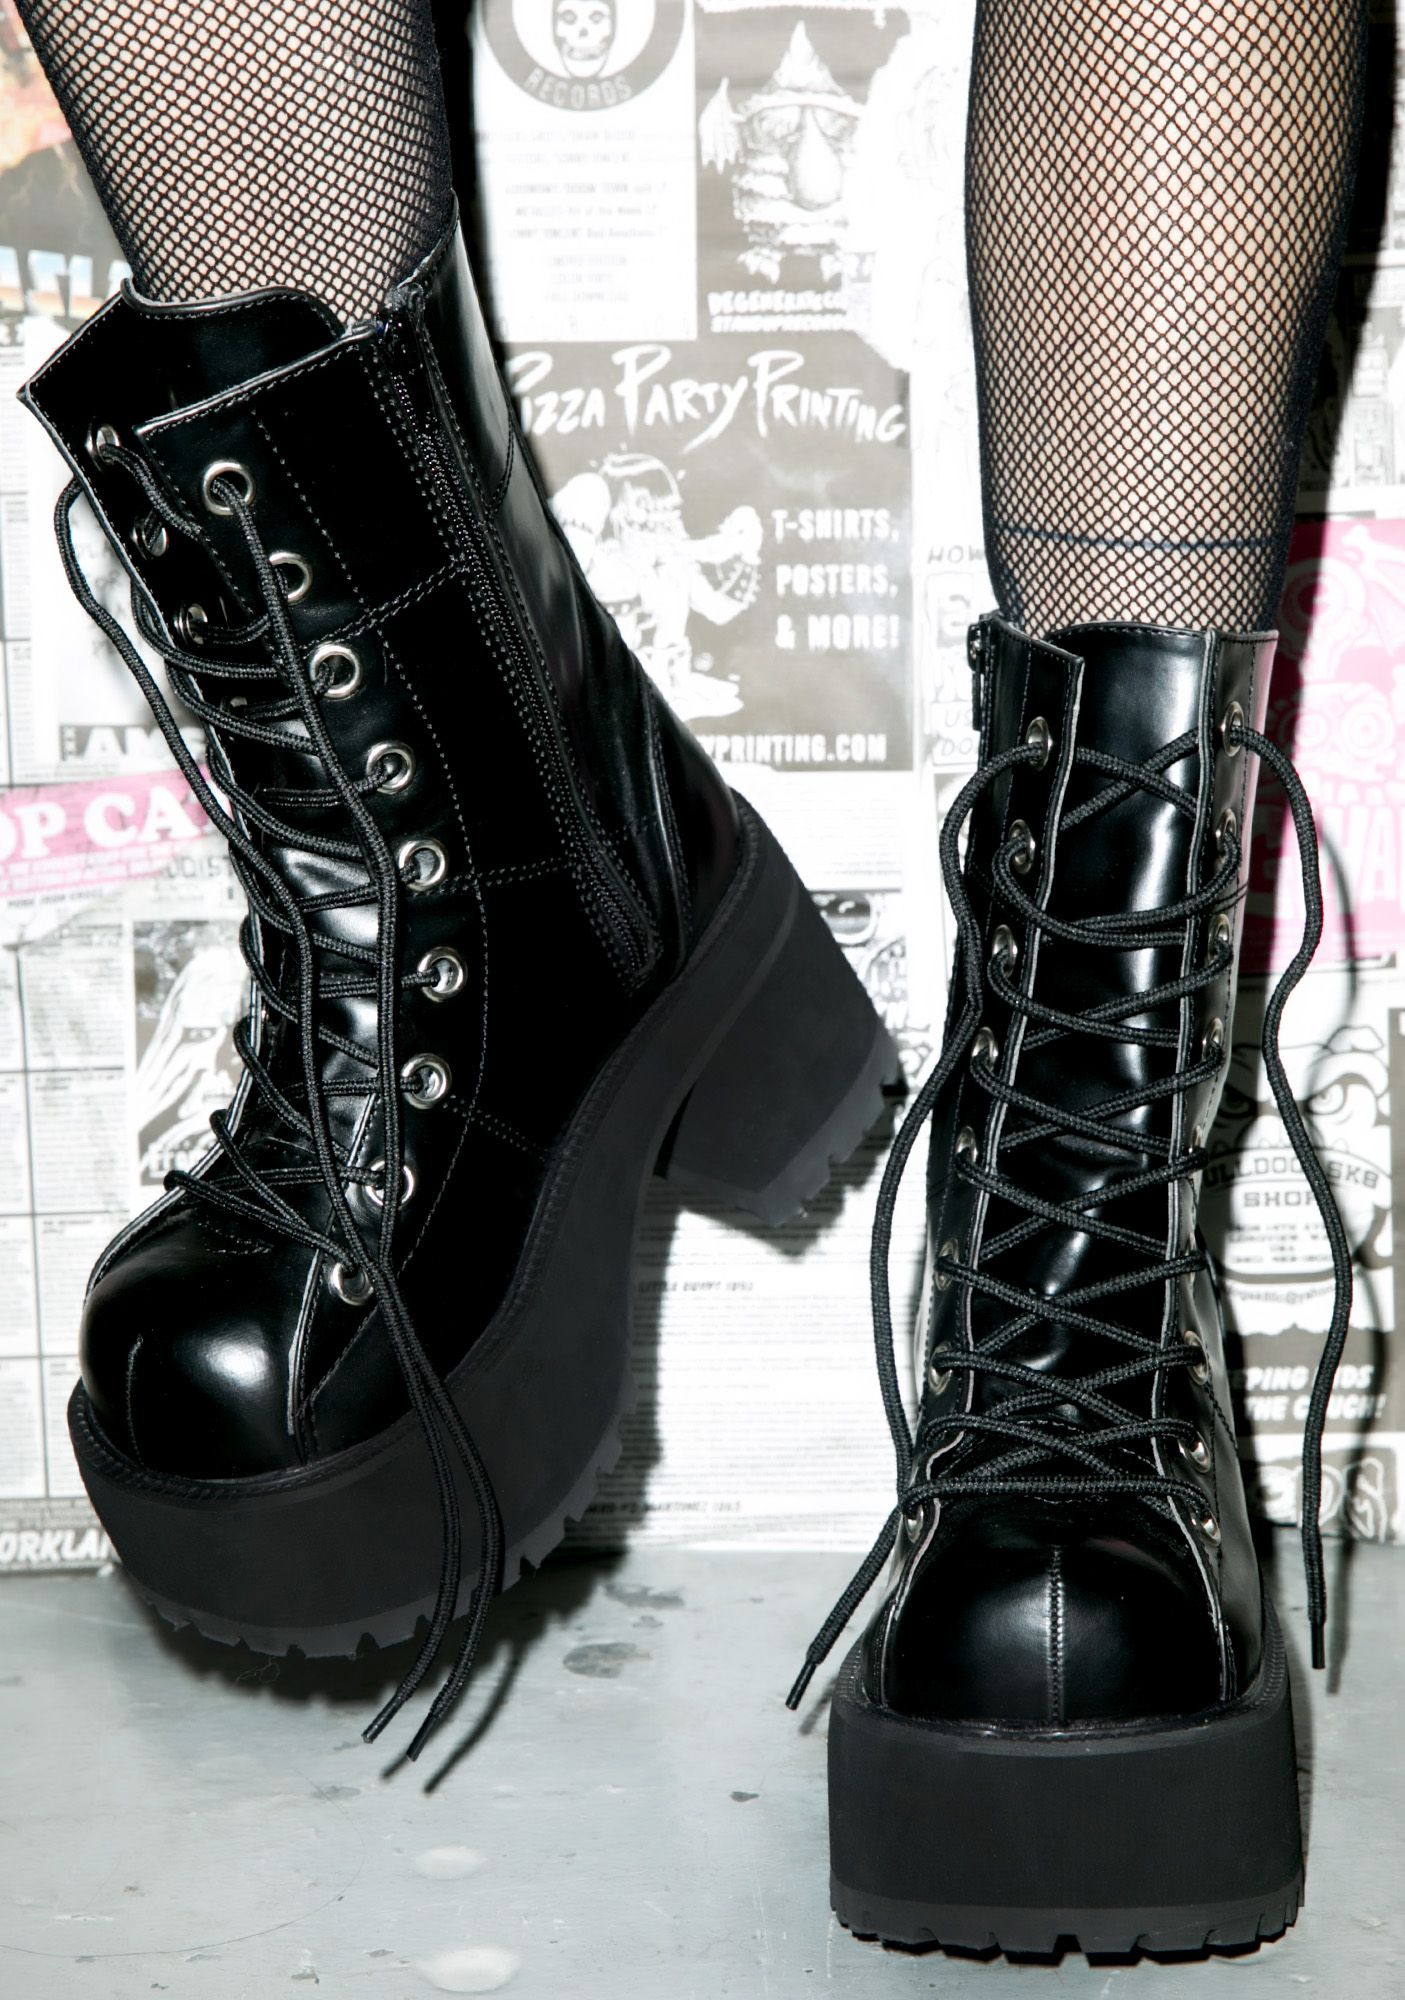 Goth Boots In 2019 Goth Boots Gothic Shoes Goth Shoes